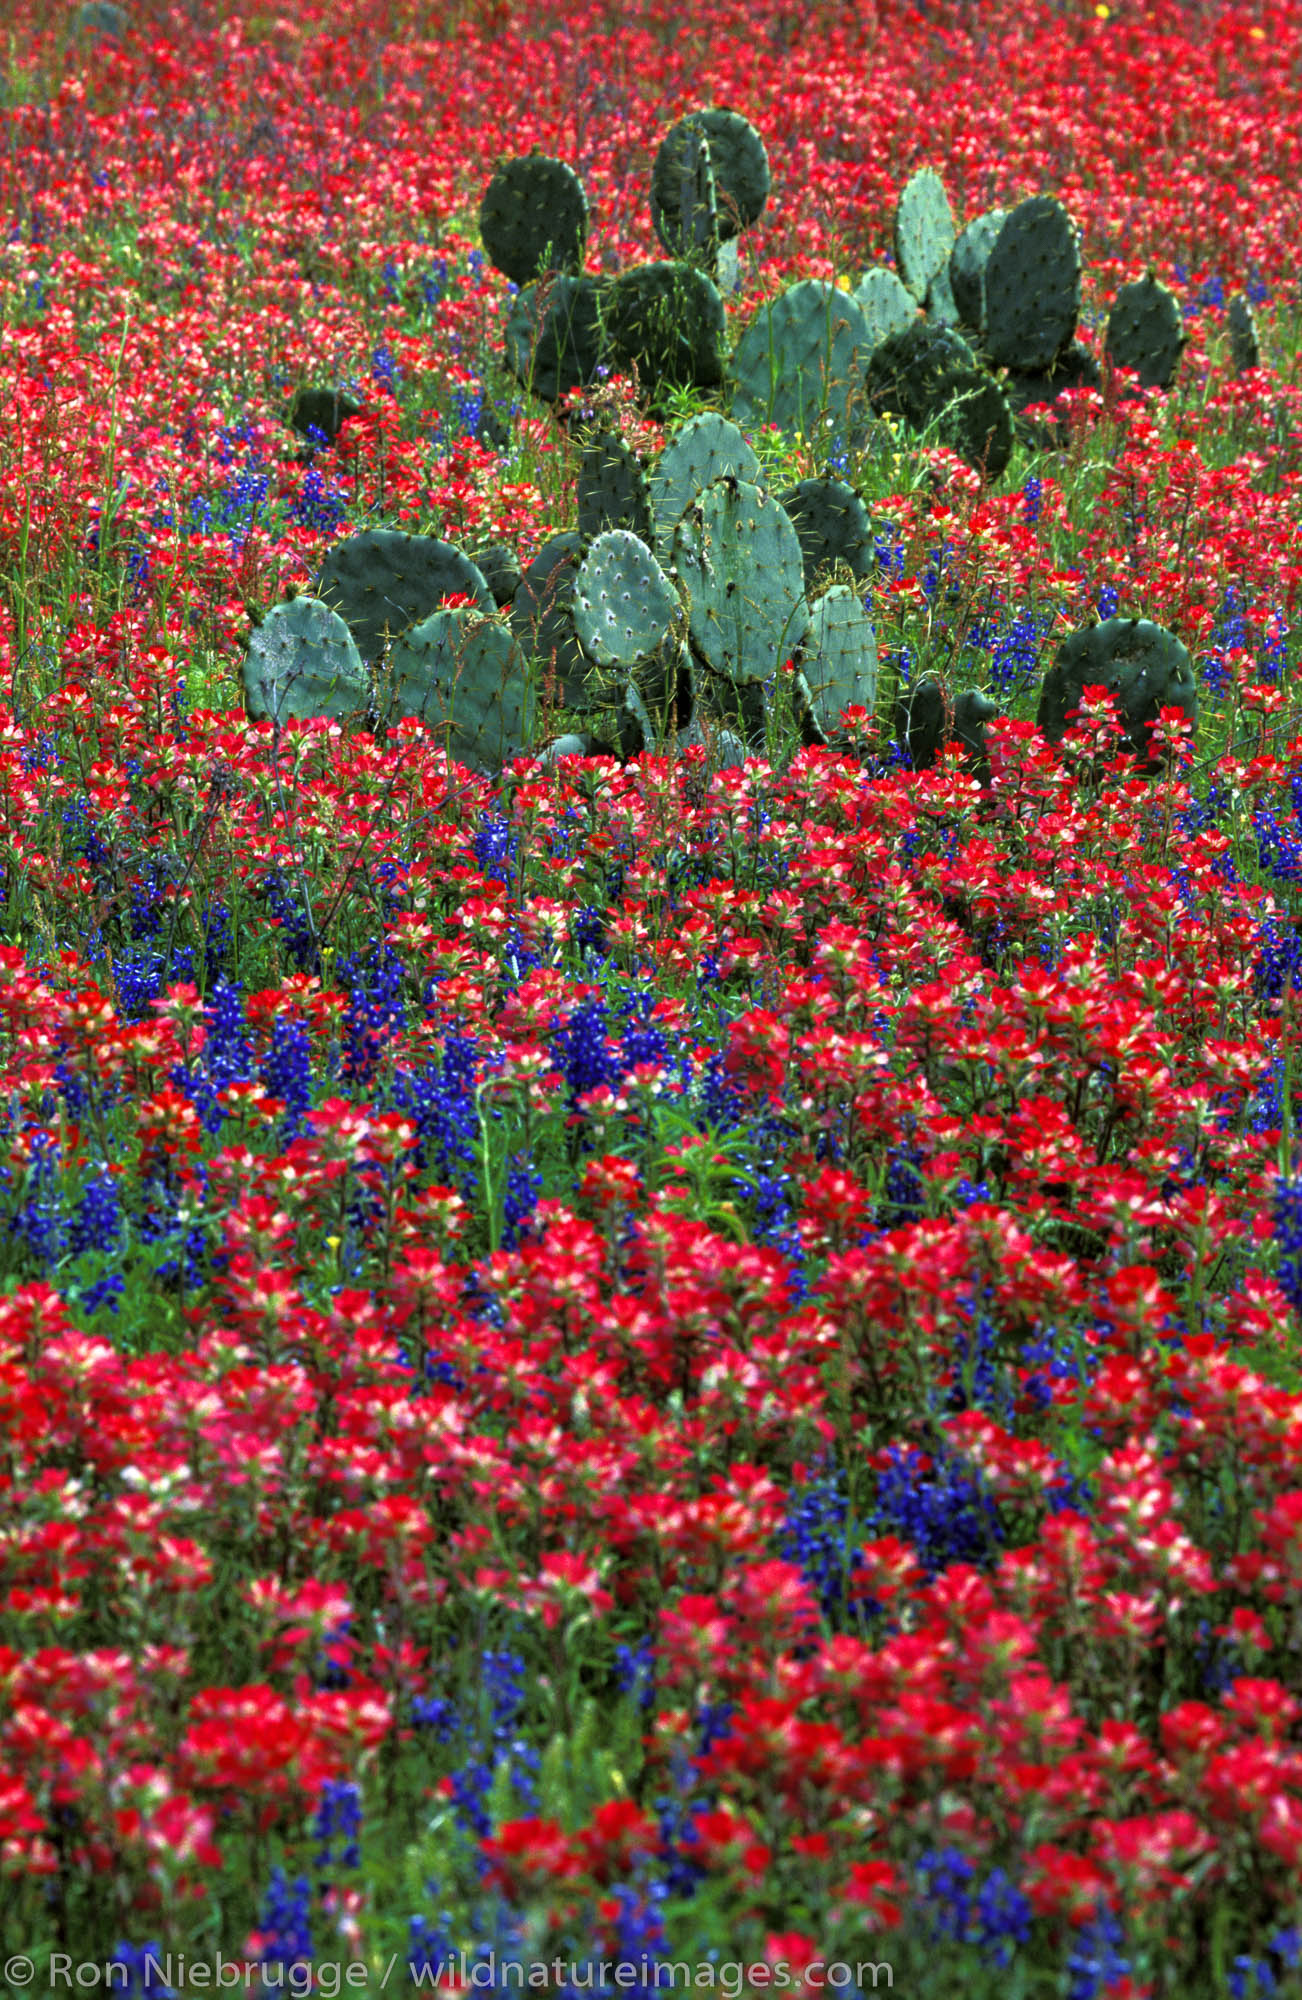 Cactus in field of Indian Paintbrush, Central Texas.